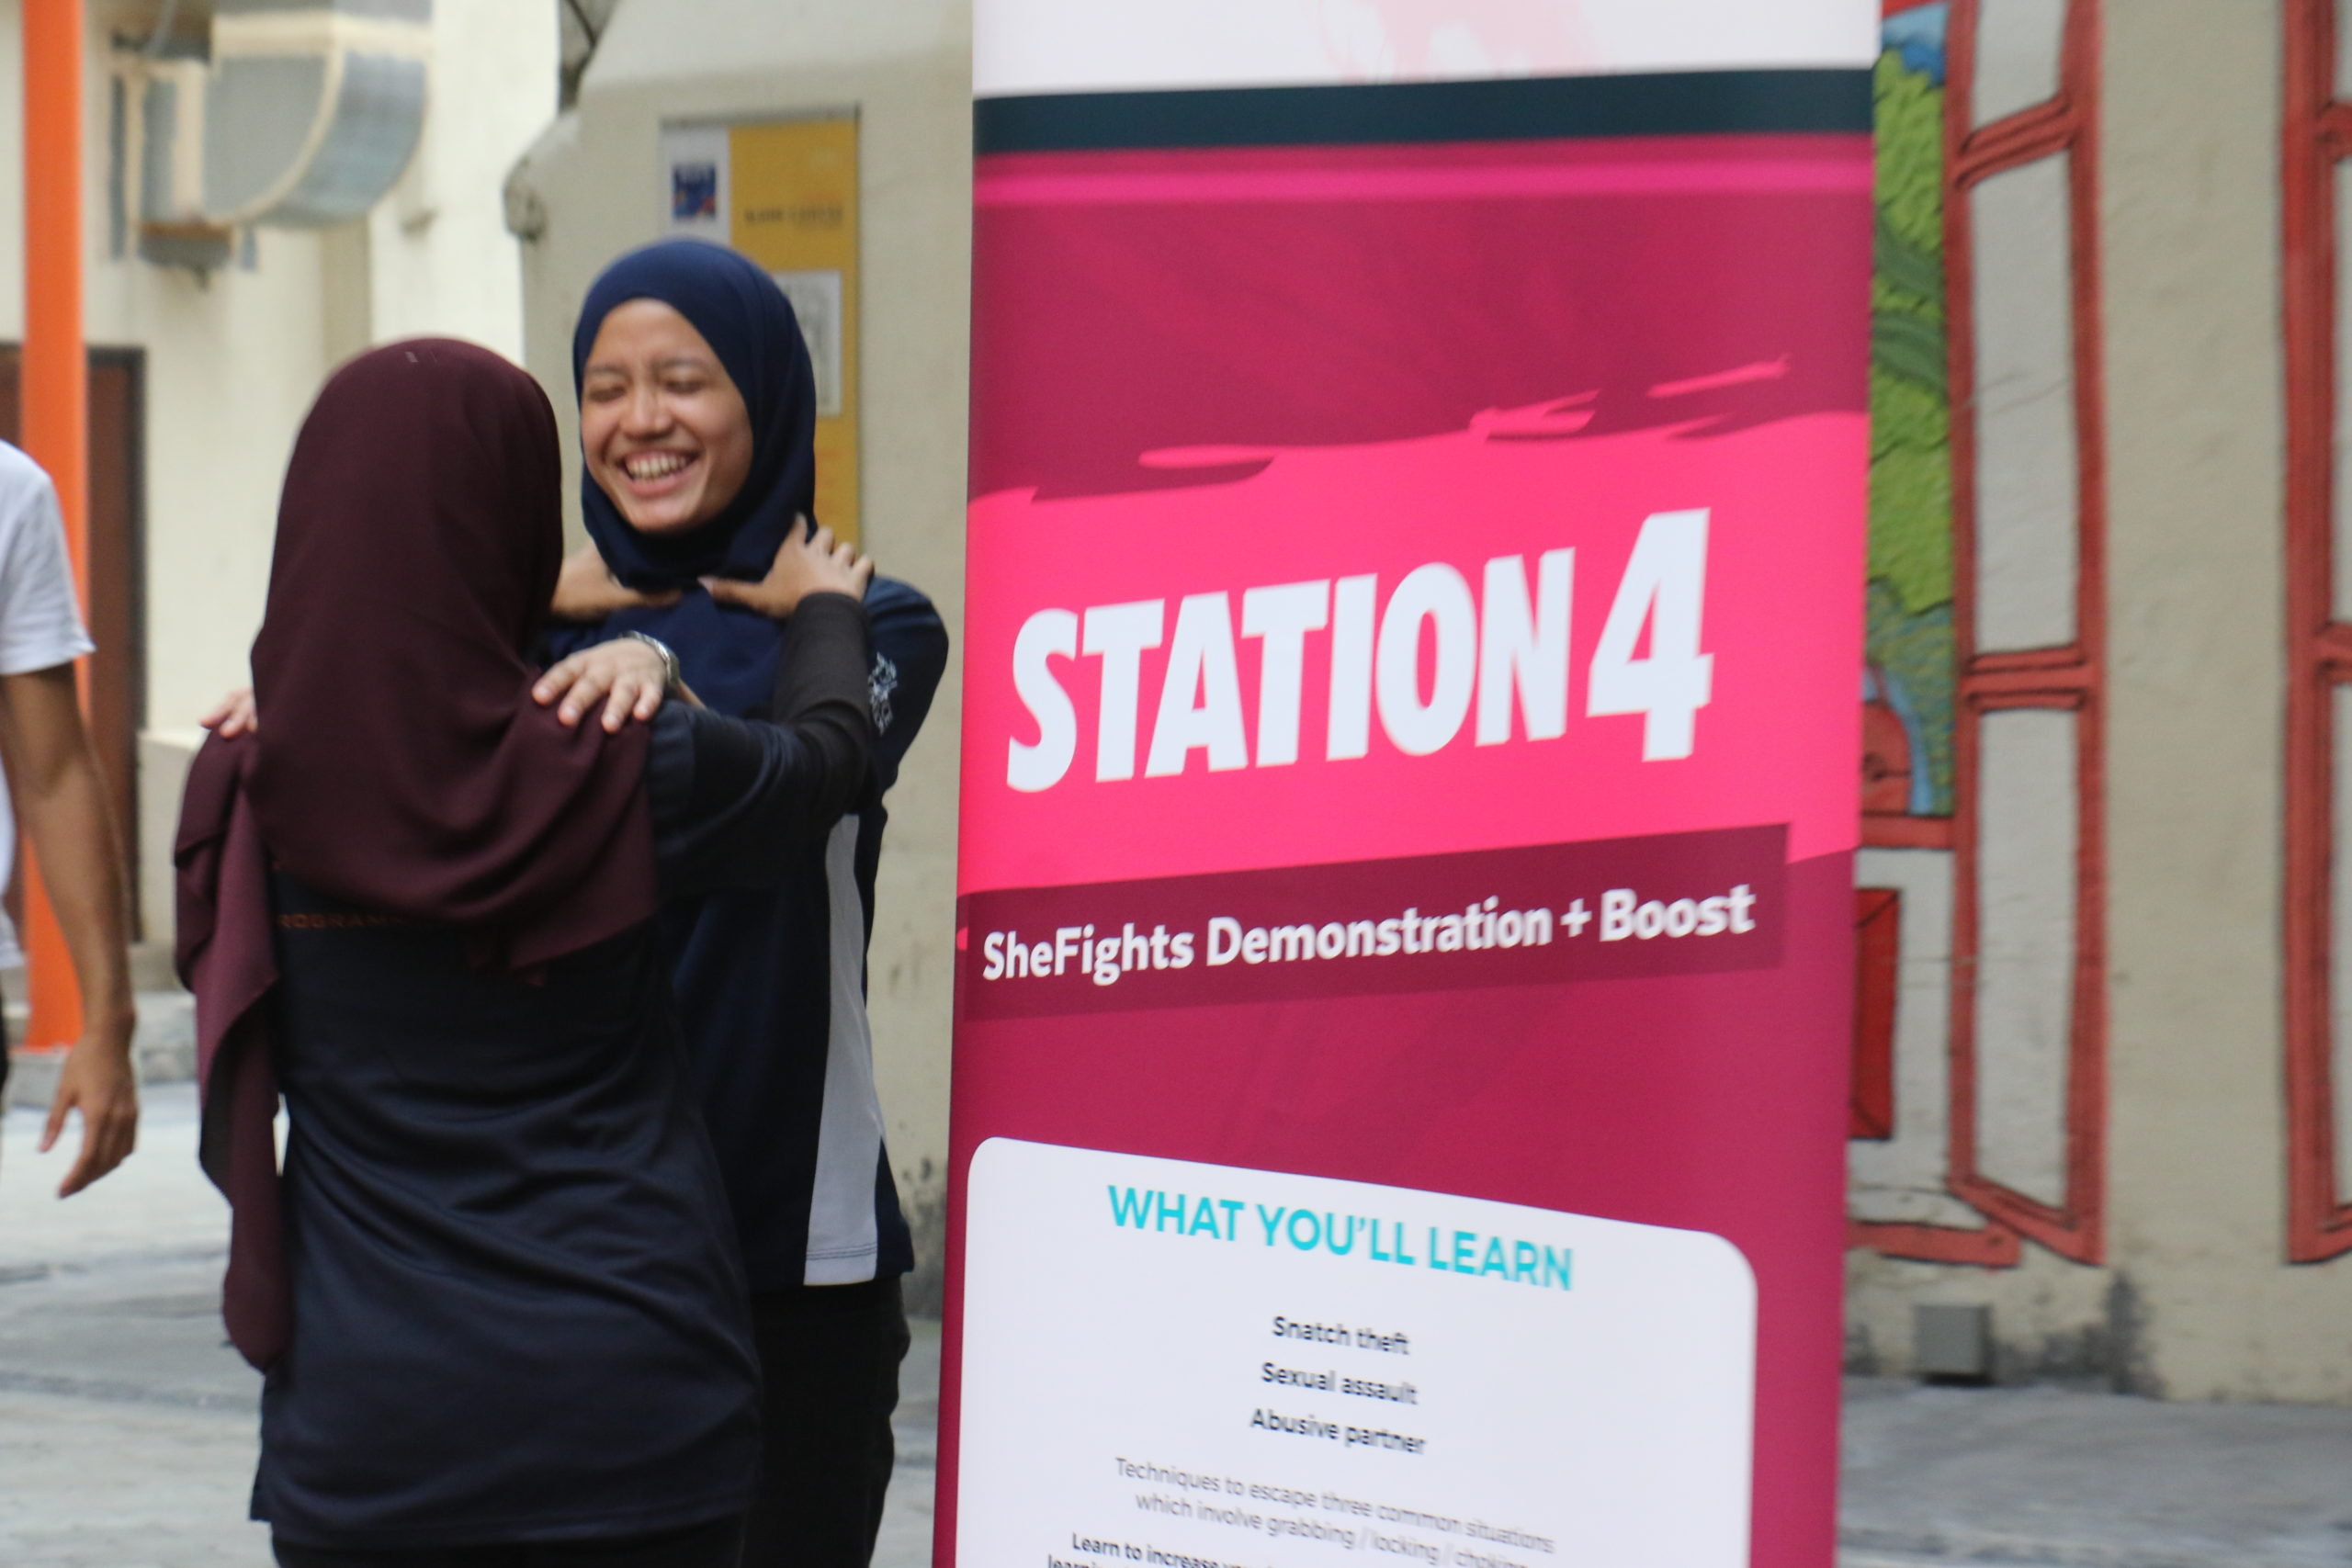 SHE Fights was created with the aim of enabling women in the city to be responsible for their own safety